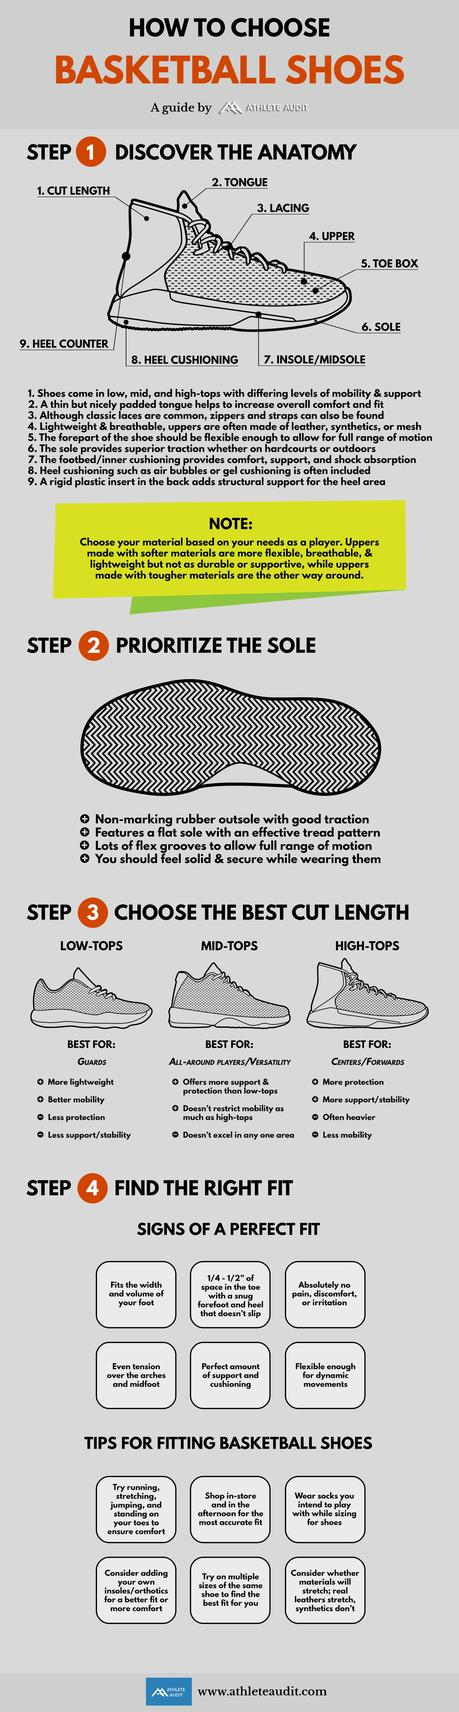 How to Choose Basketball Shoes - Infographic - Athlete Audit